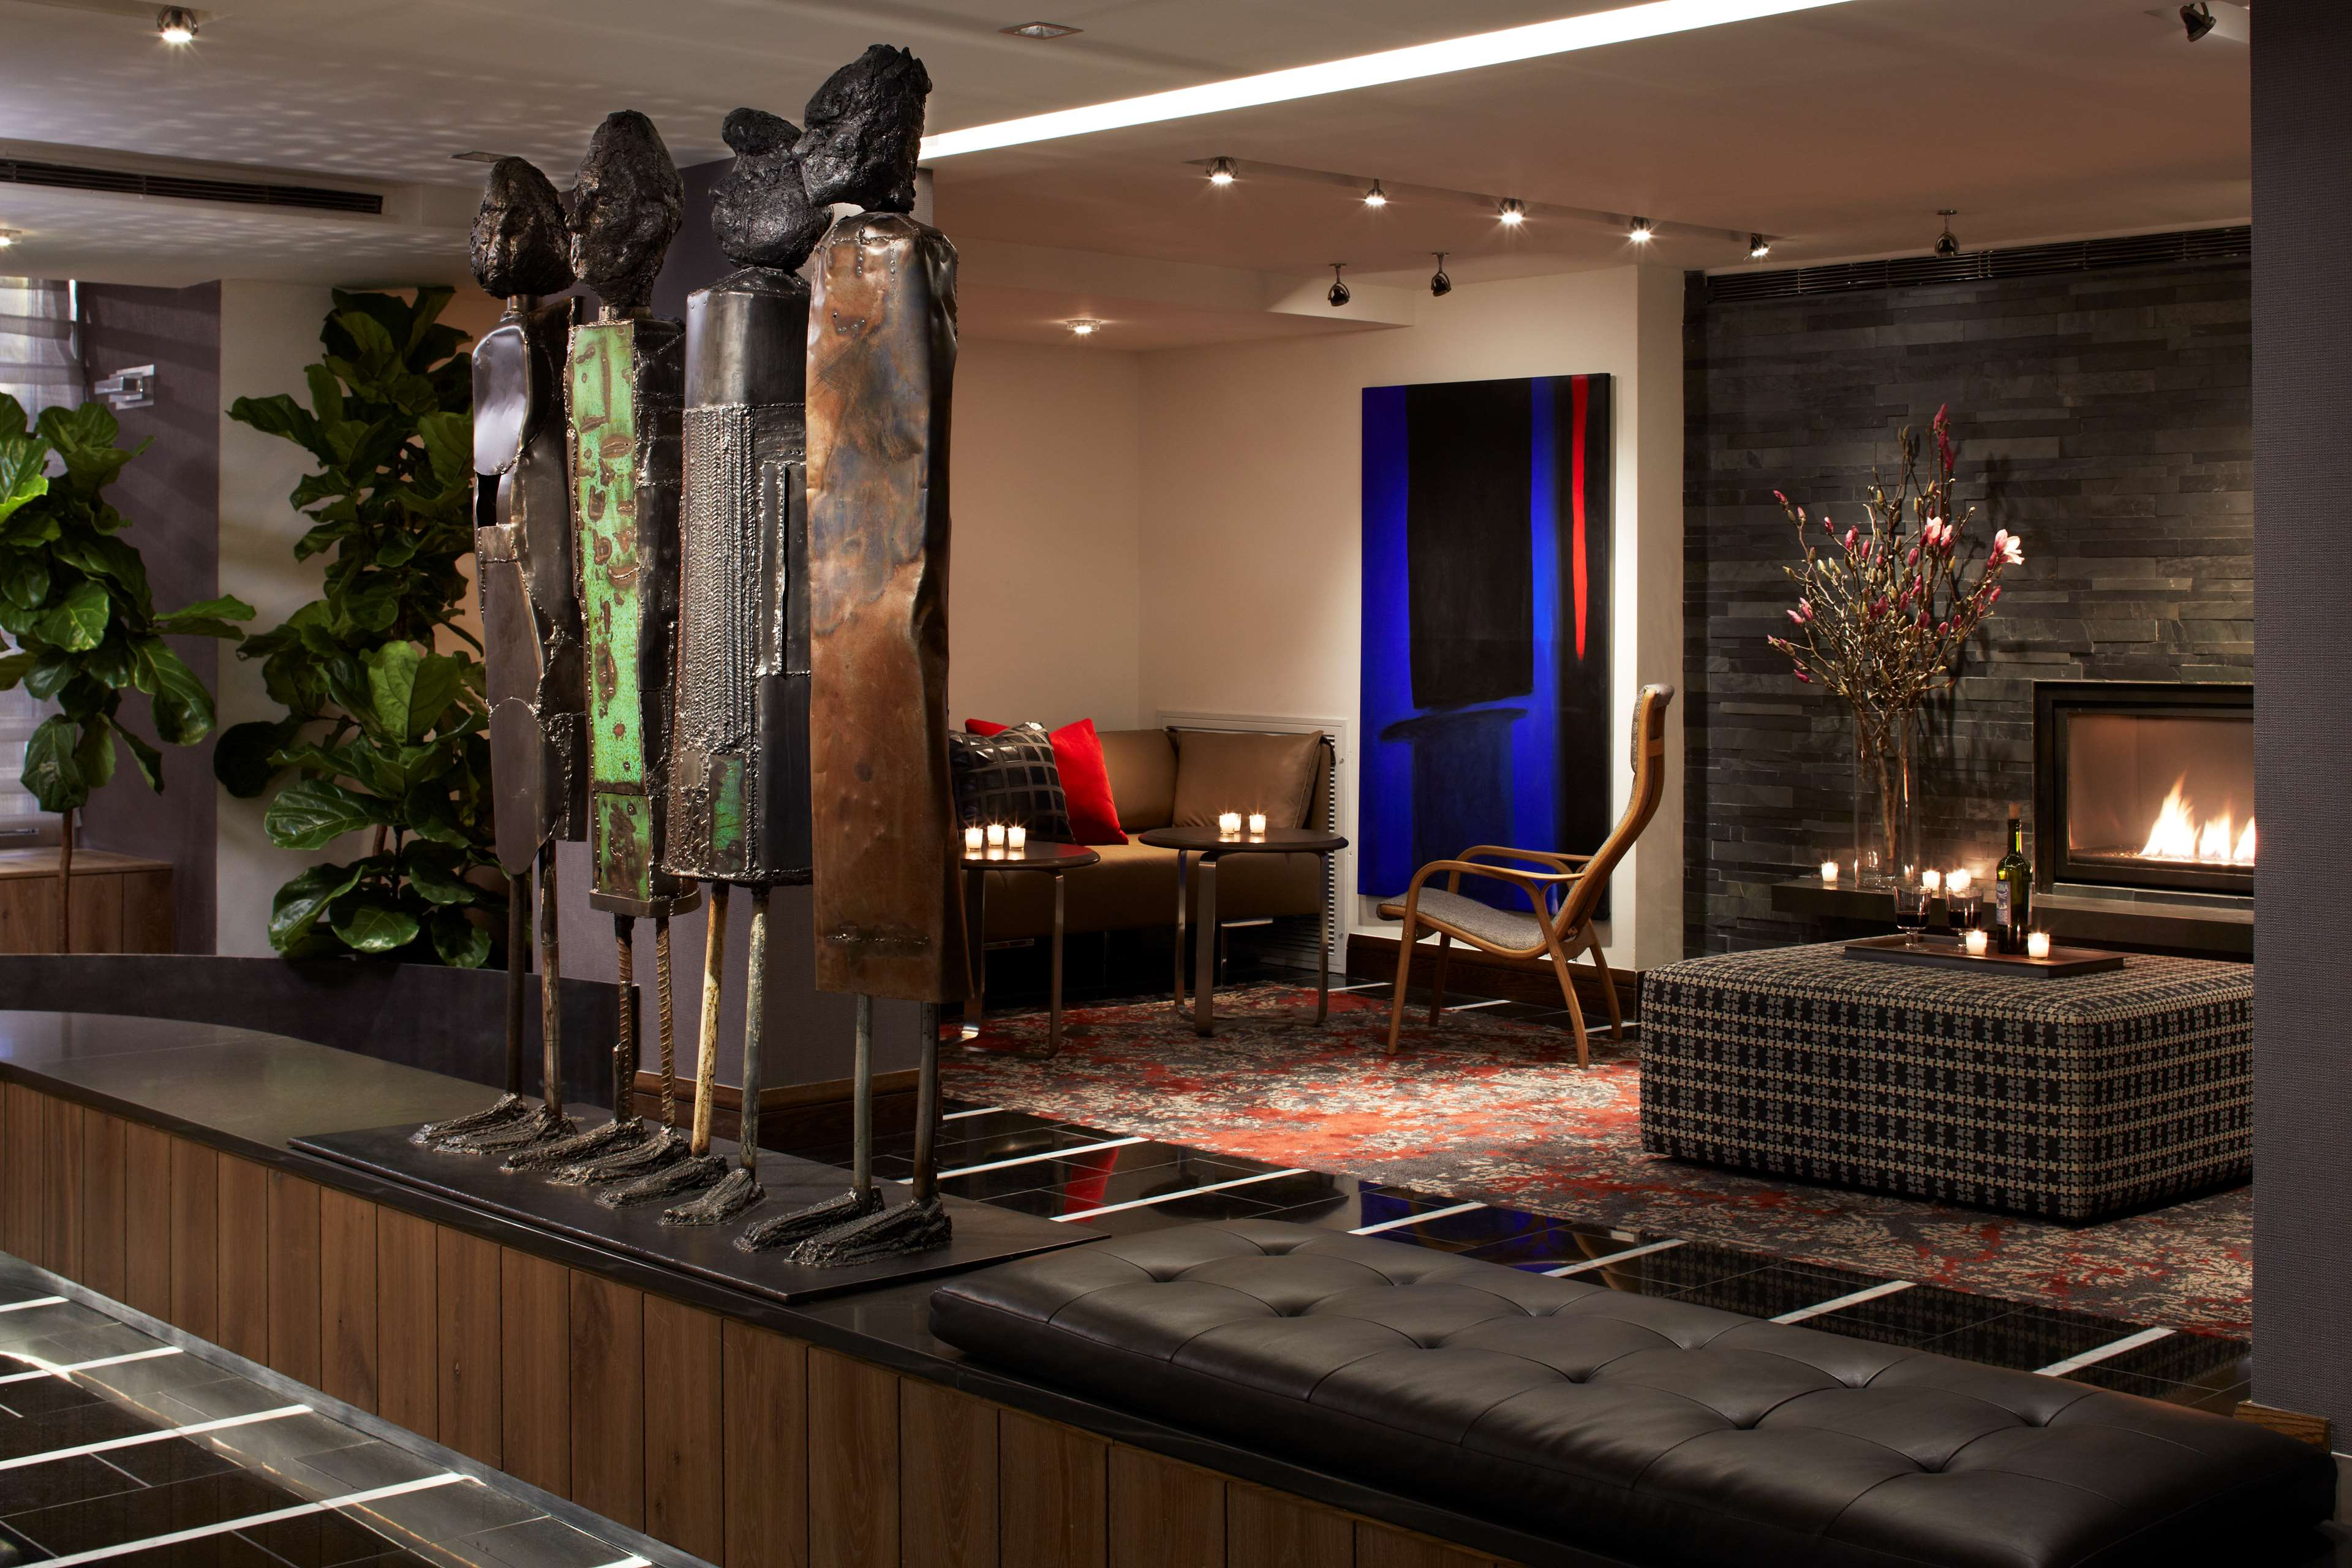 Fifty nyc an affinia hotel coupons near me in new york for Modern hotels near me